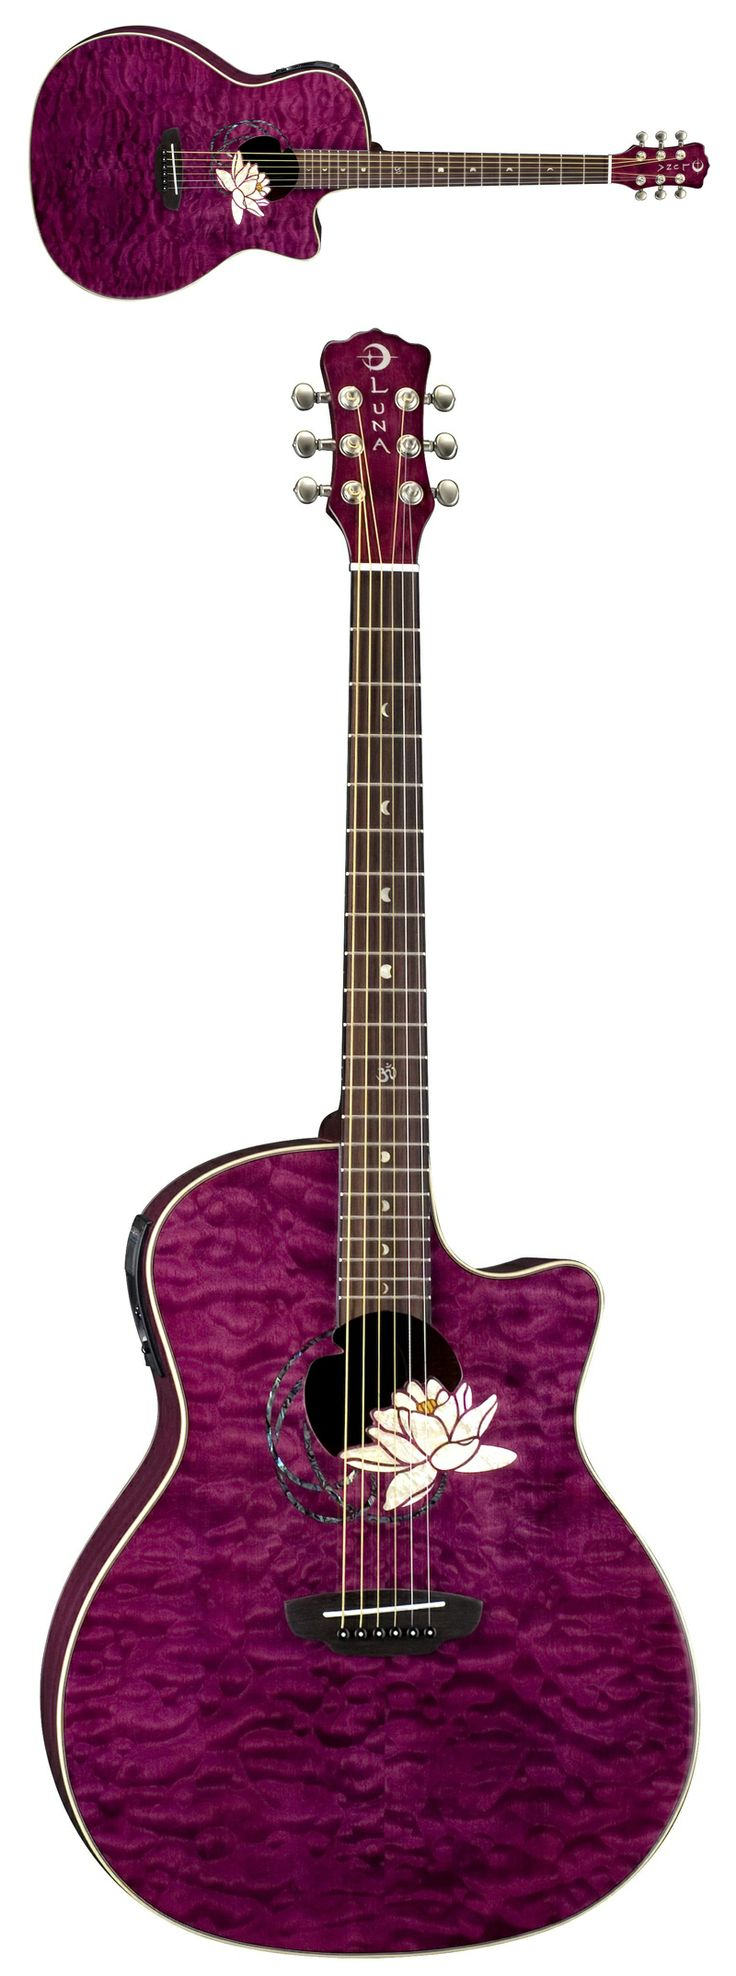 176 best i love luna guitars images on pinterest luna guitars luna guitars flora lotus acoustic electric guitar cheapraybanclubmaster Image collections